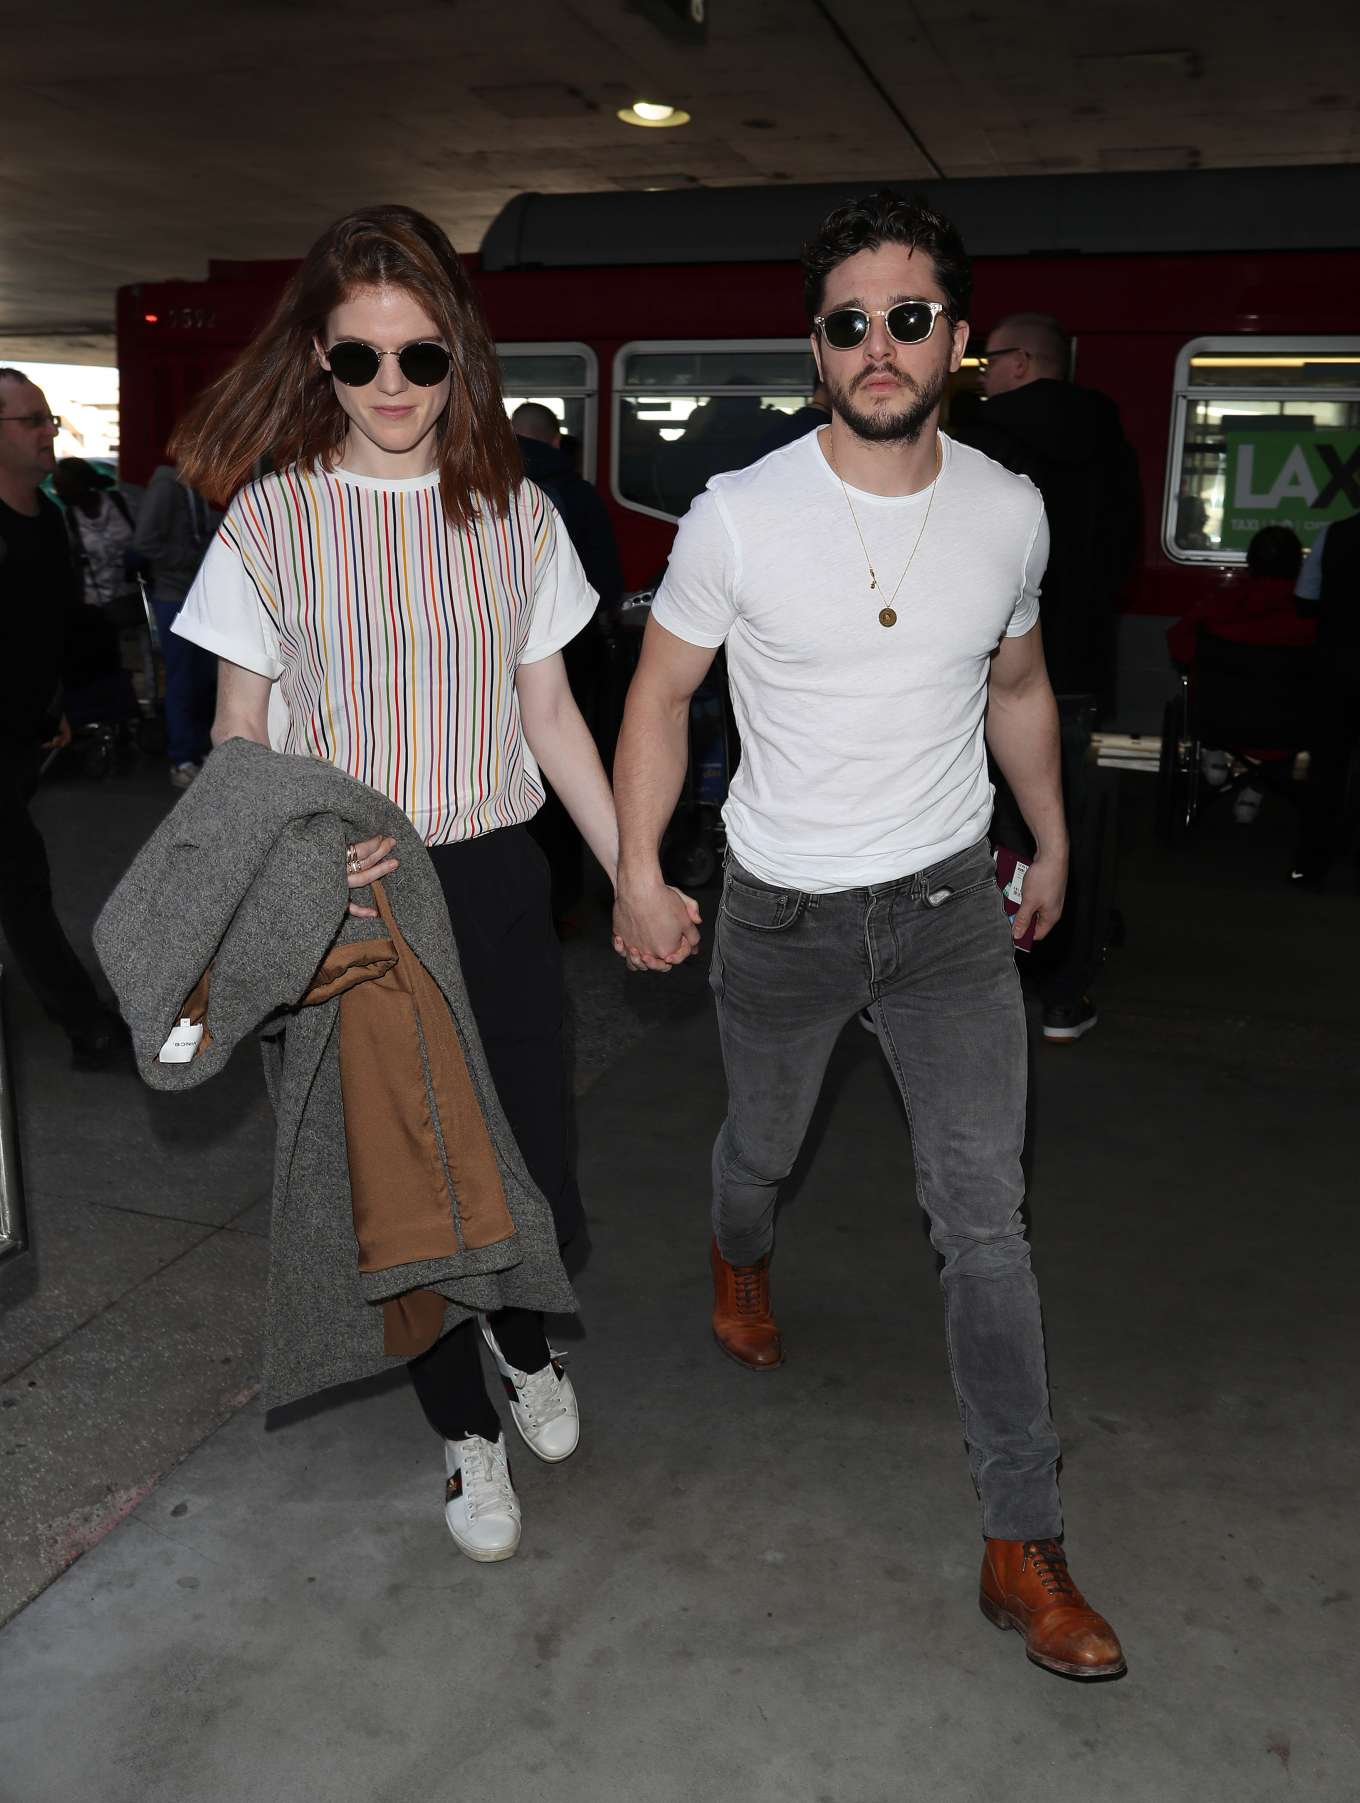 Rose Leslie and Kit Harington - Arrives at LAX airport in Los Angeles